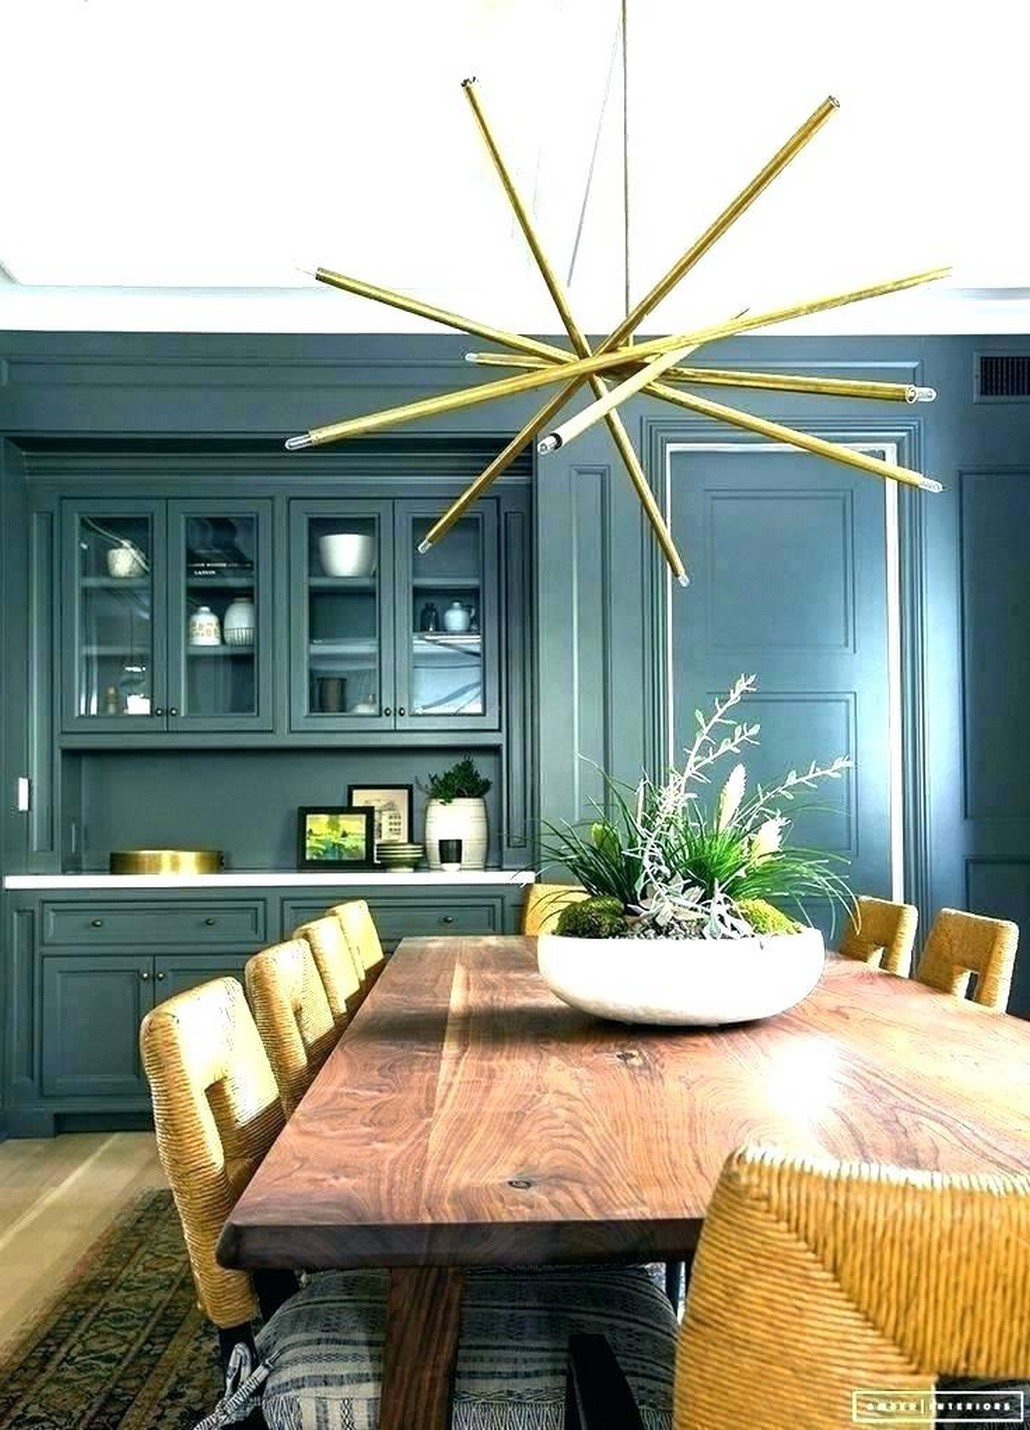 Fascinating Arrangement Concept of Dining Room That You Must Follow